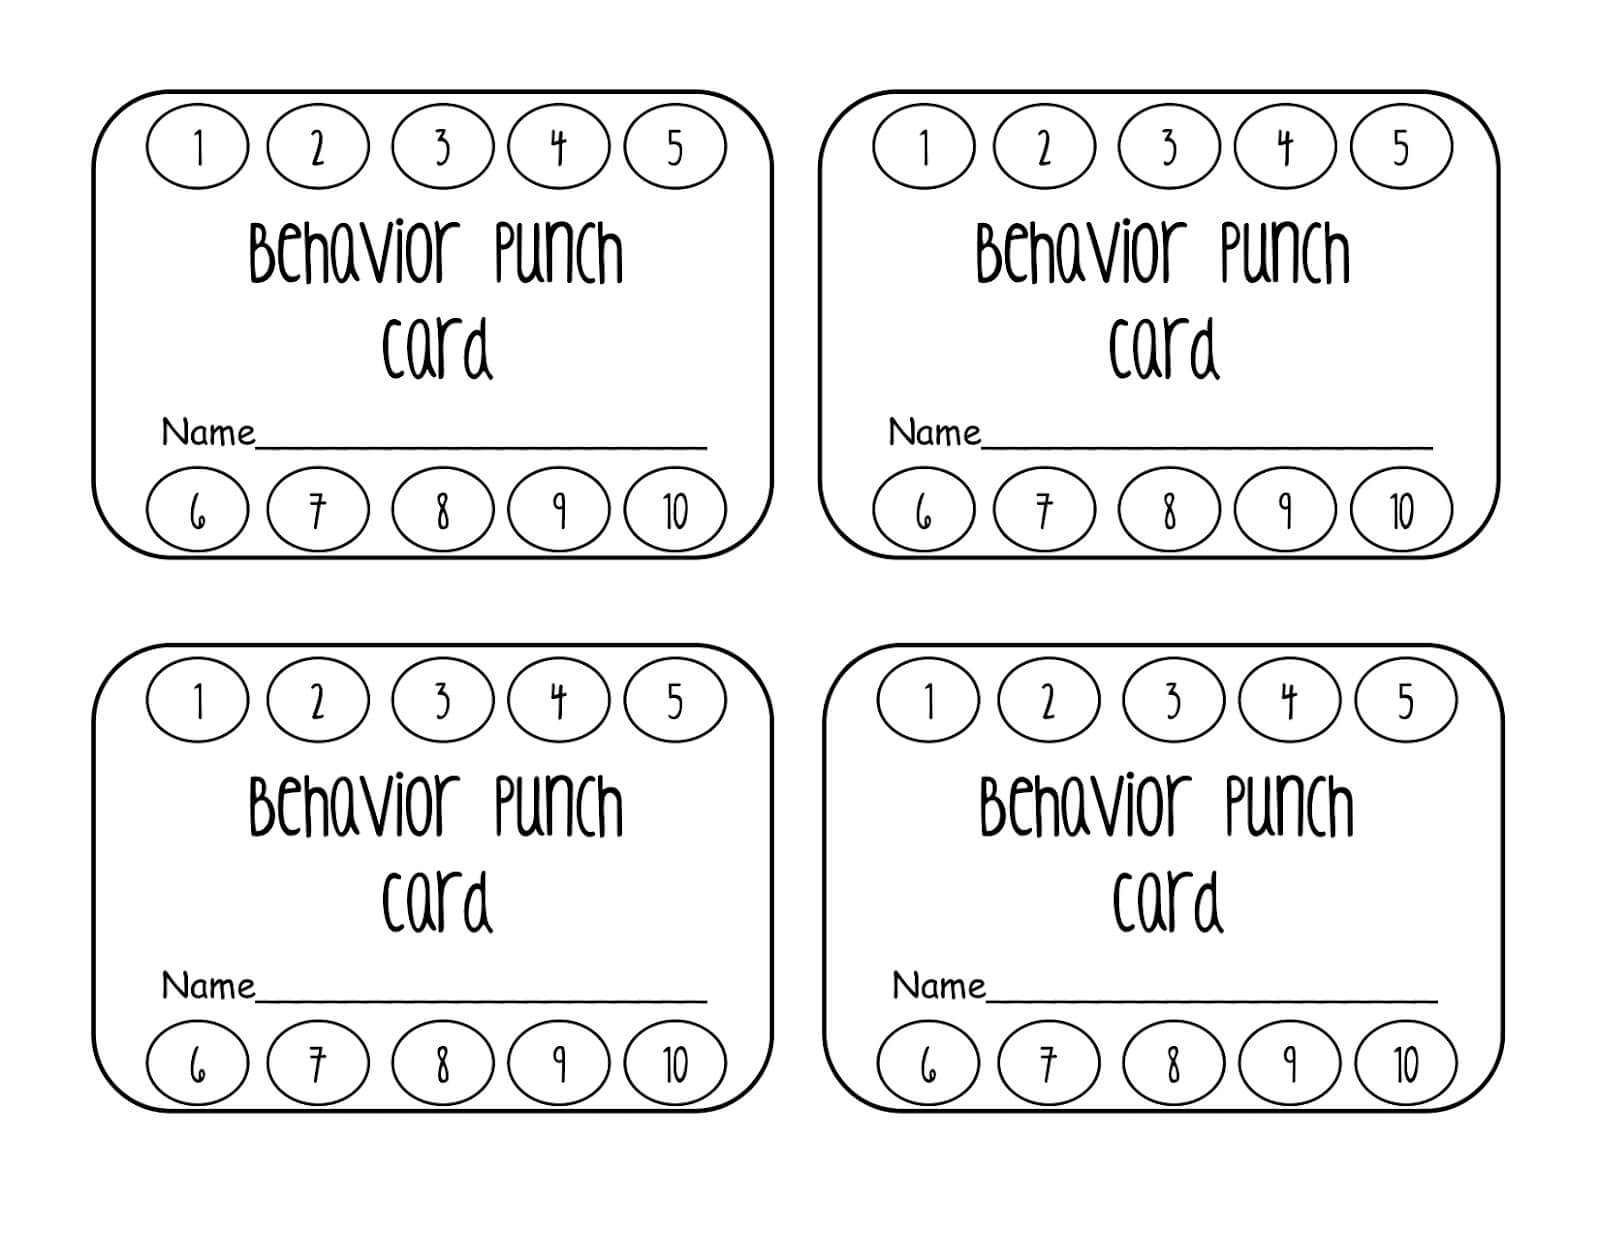 023 Template Ideas Behavior Punch Cards Pinterest Card For Free Printable Punch Card Template